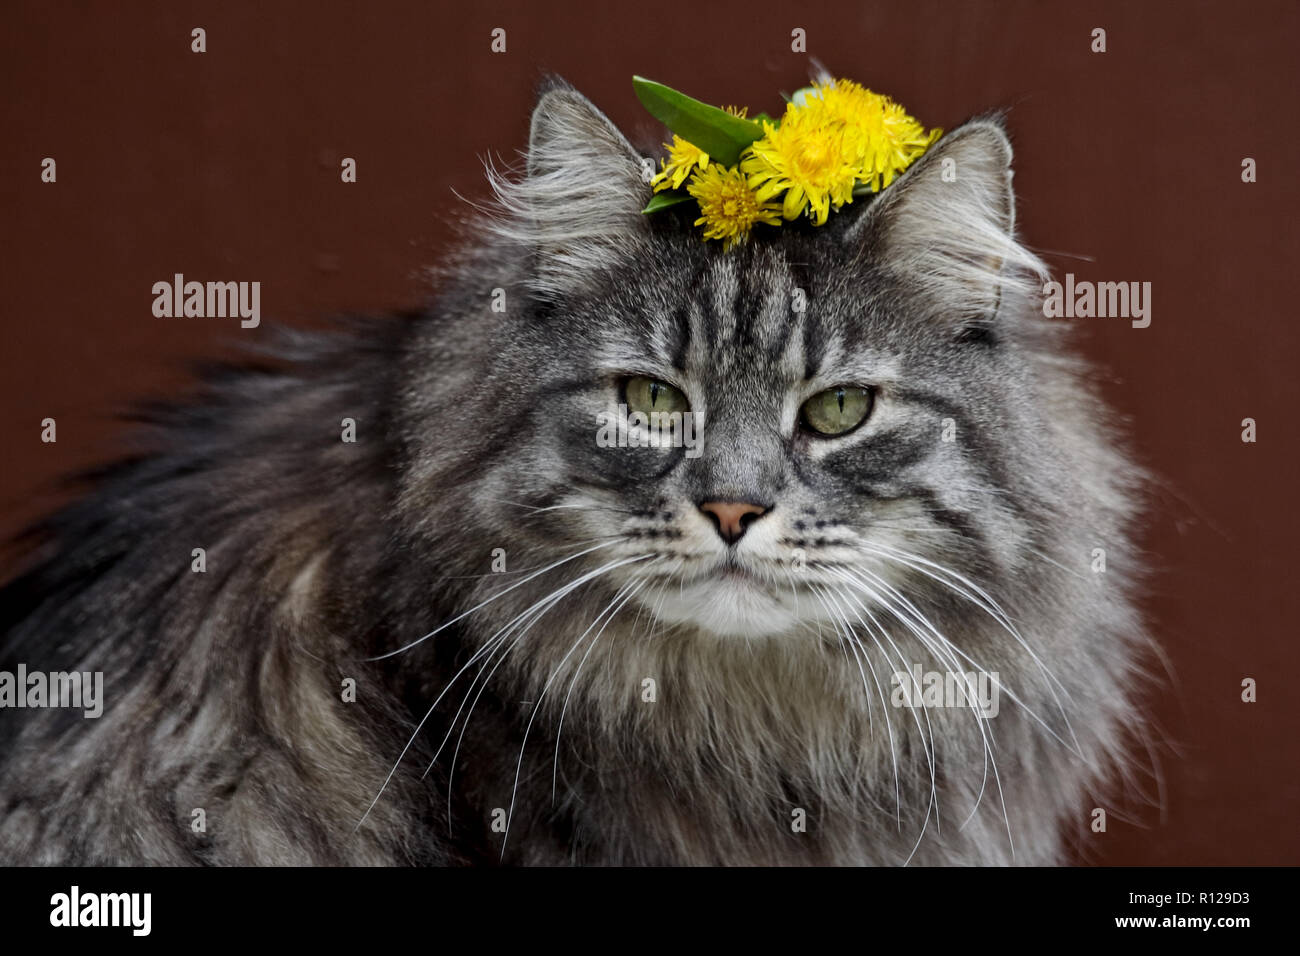 Norwegian forest cat with garland of fresh yellow dandelions  on his head - Stock Image